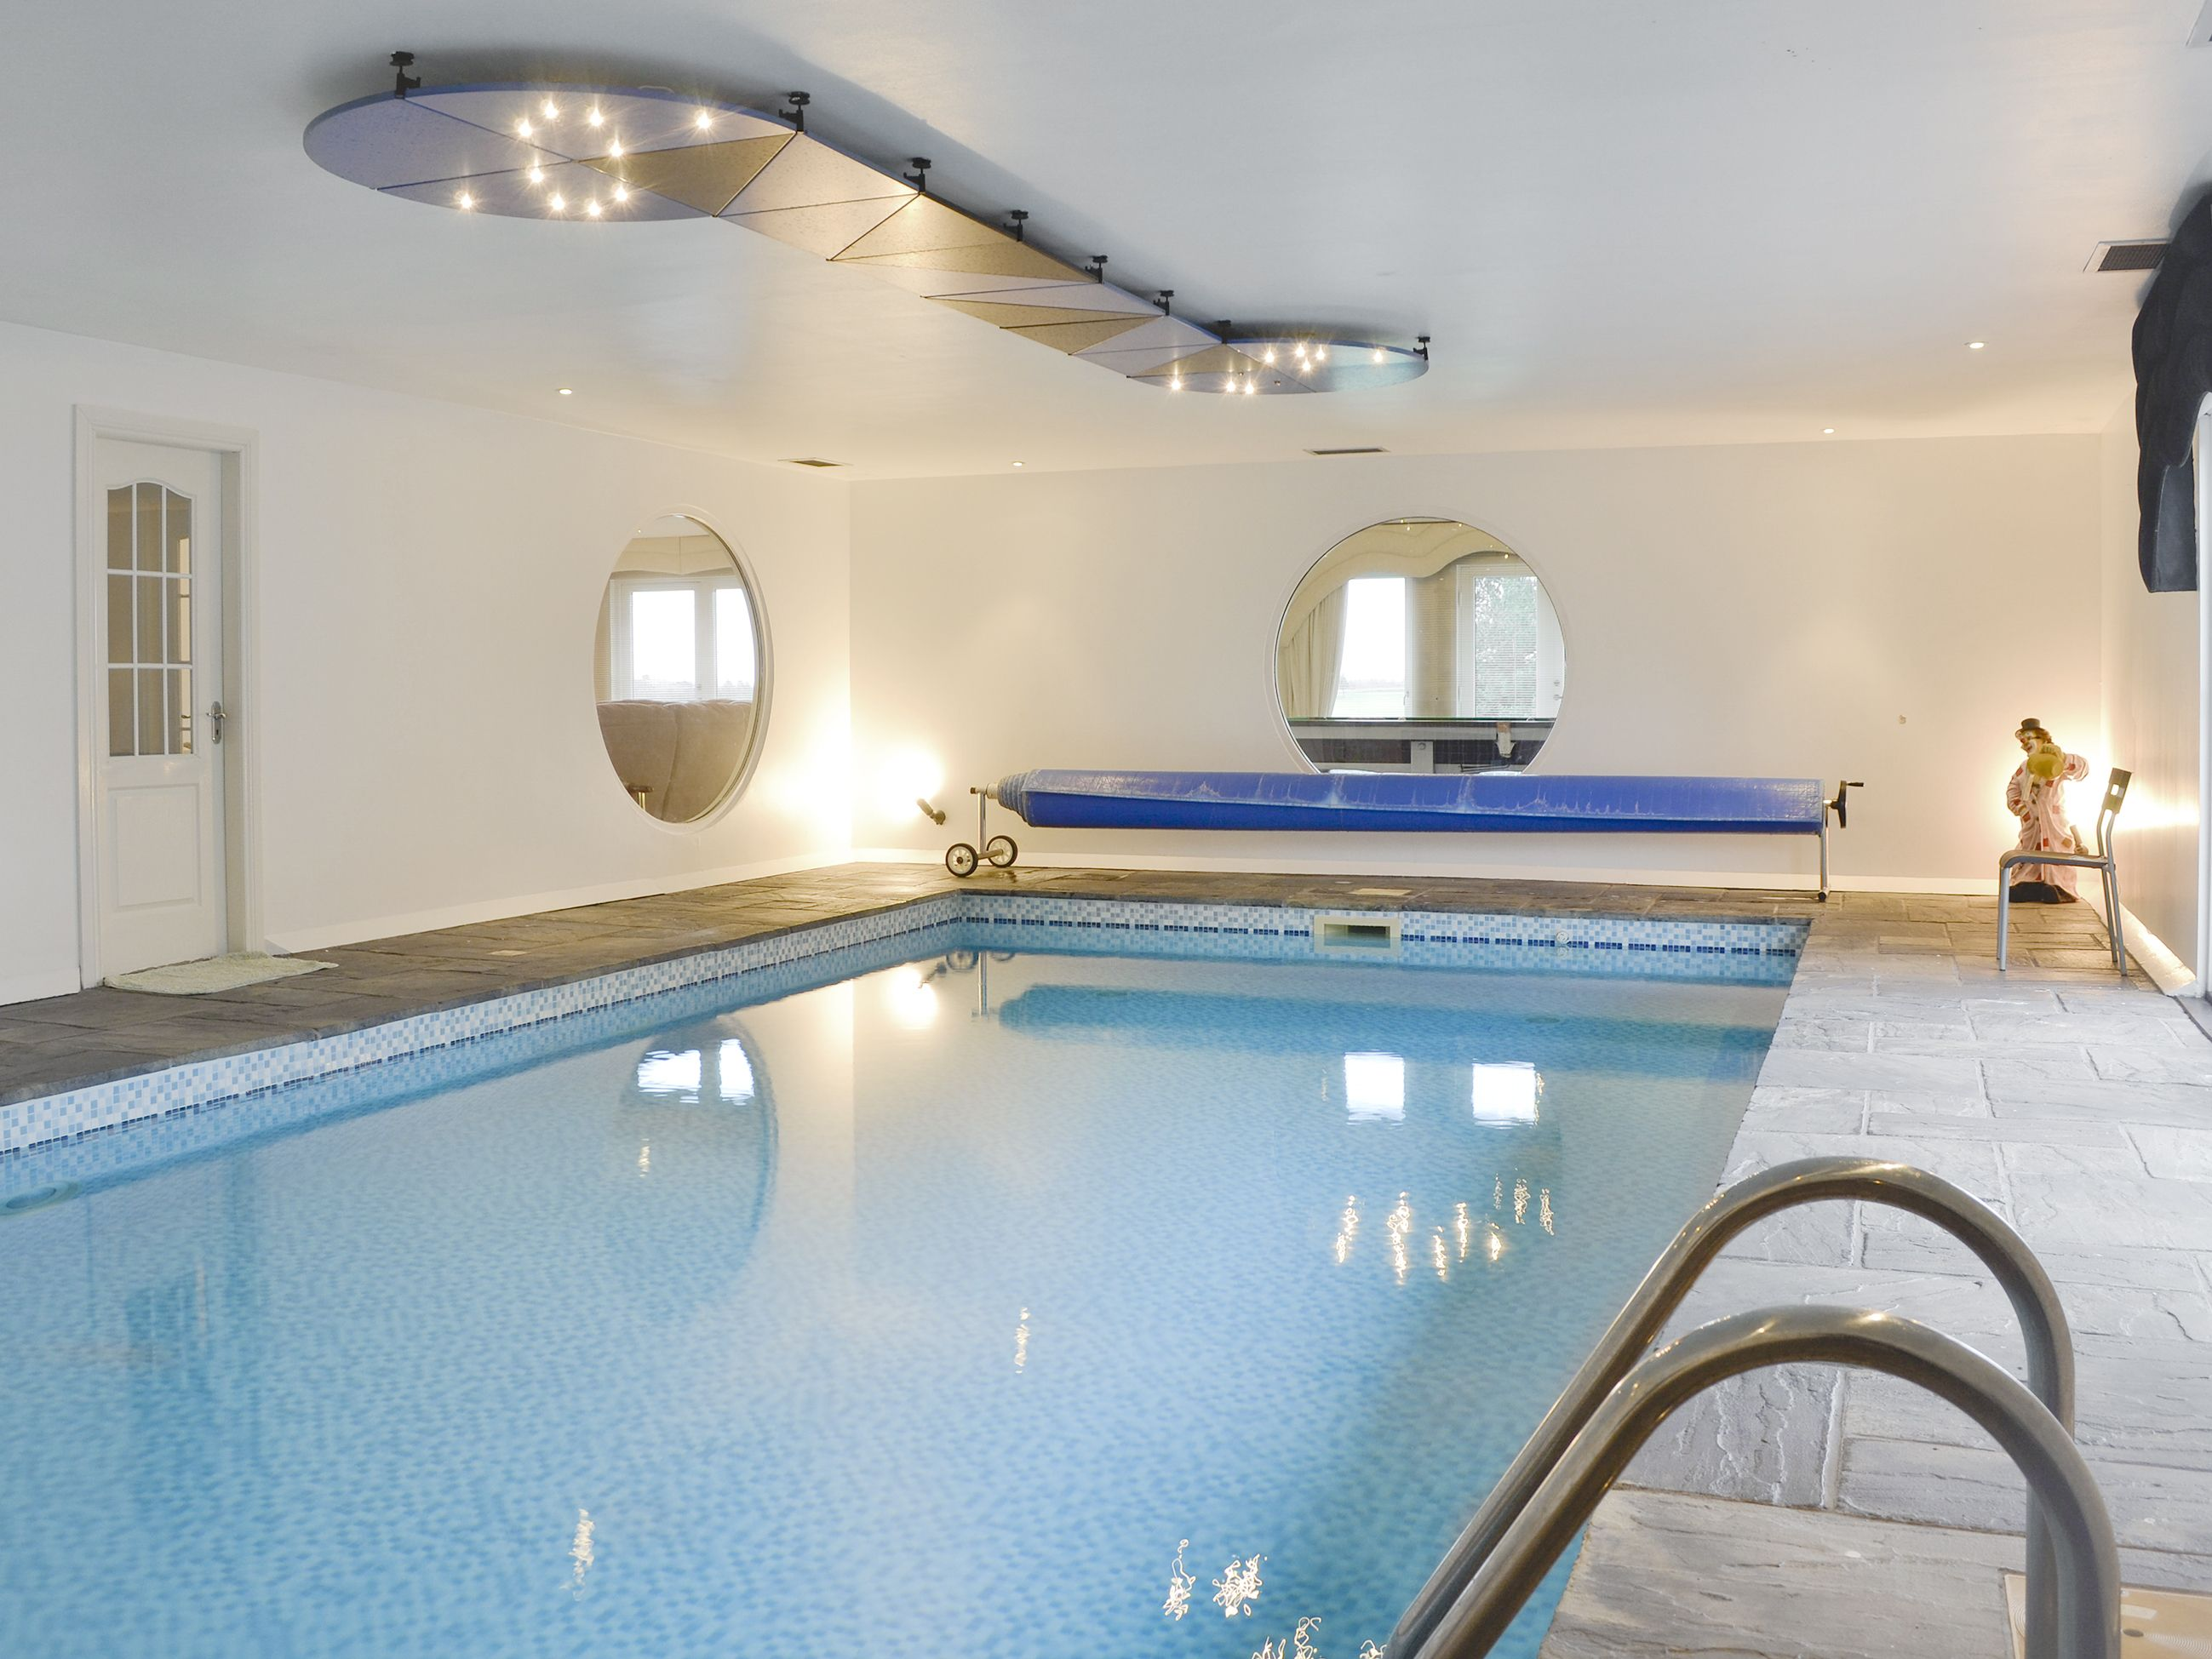 Golf View Ref Uk5217 In Fowlis Near Dundee Angus Cottages Com Cottage Indoor Swimming Pools Scottish Cottages